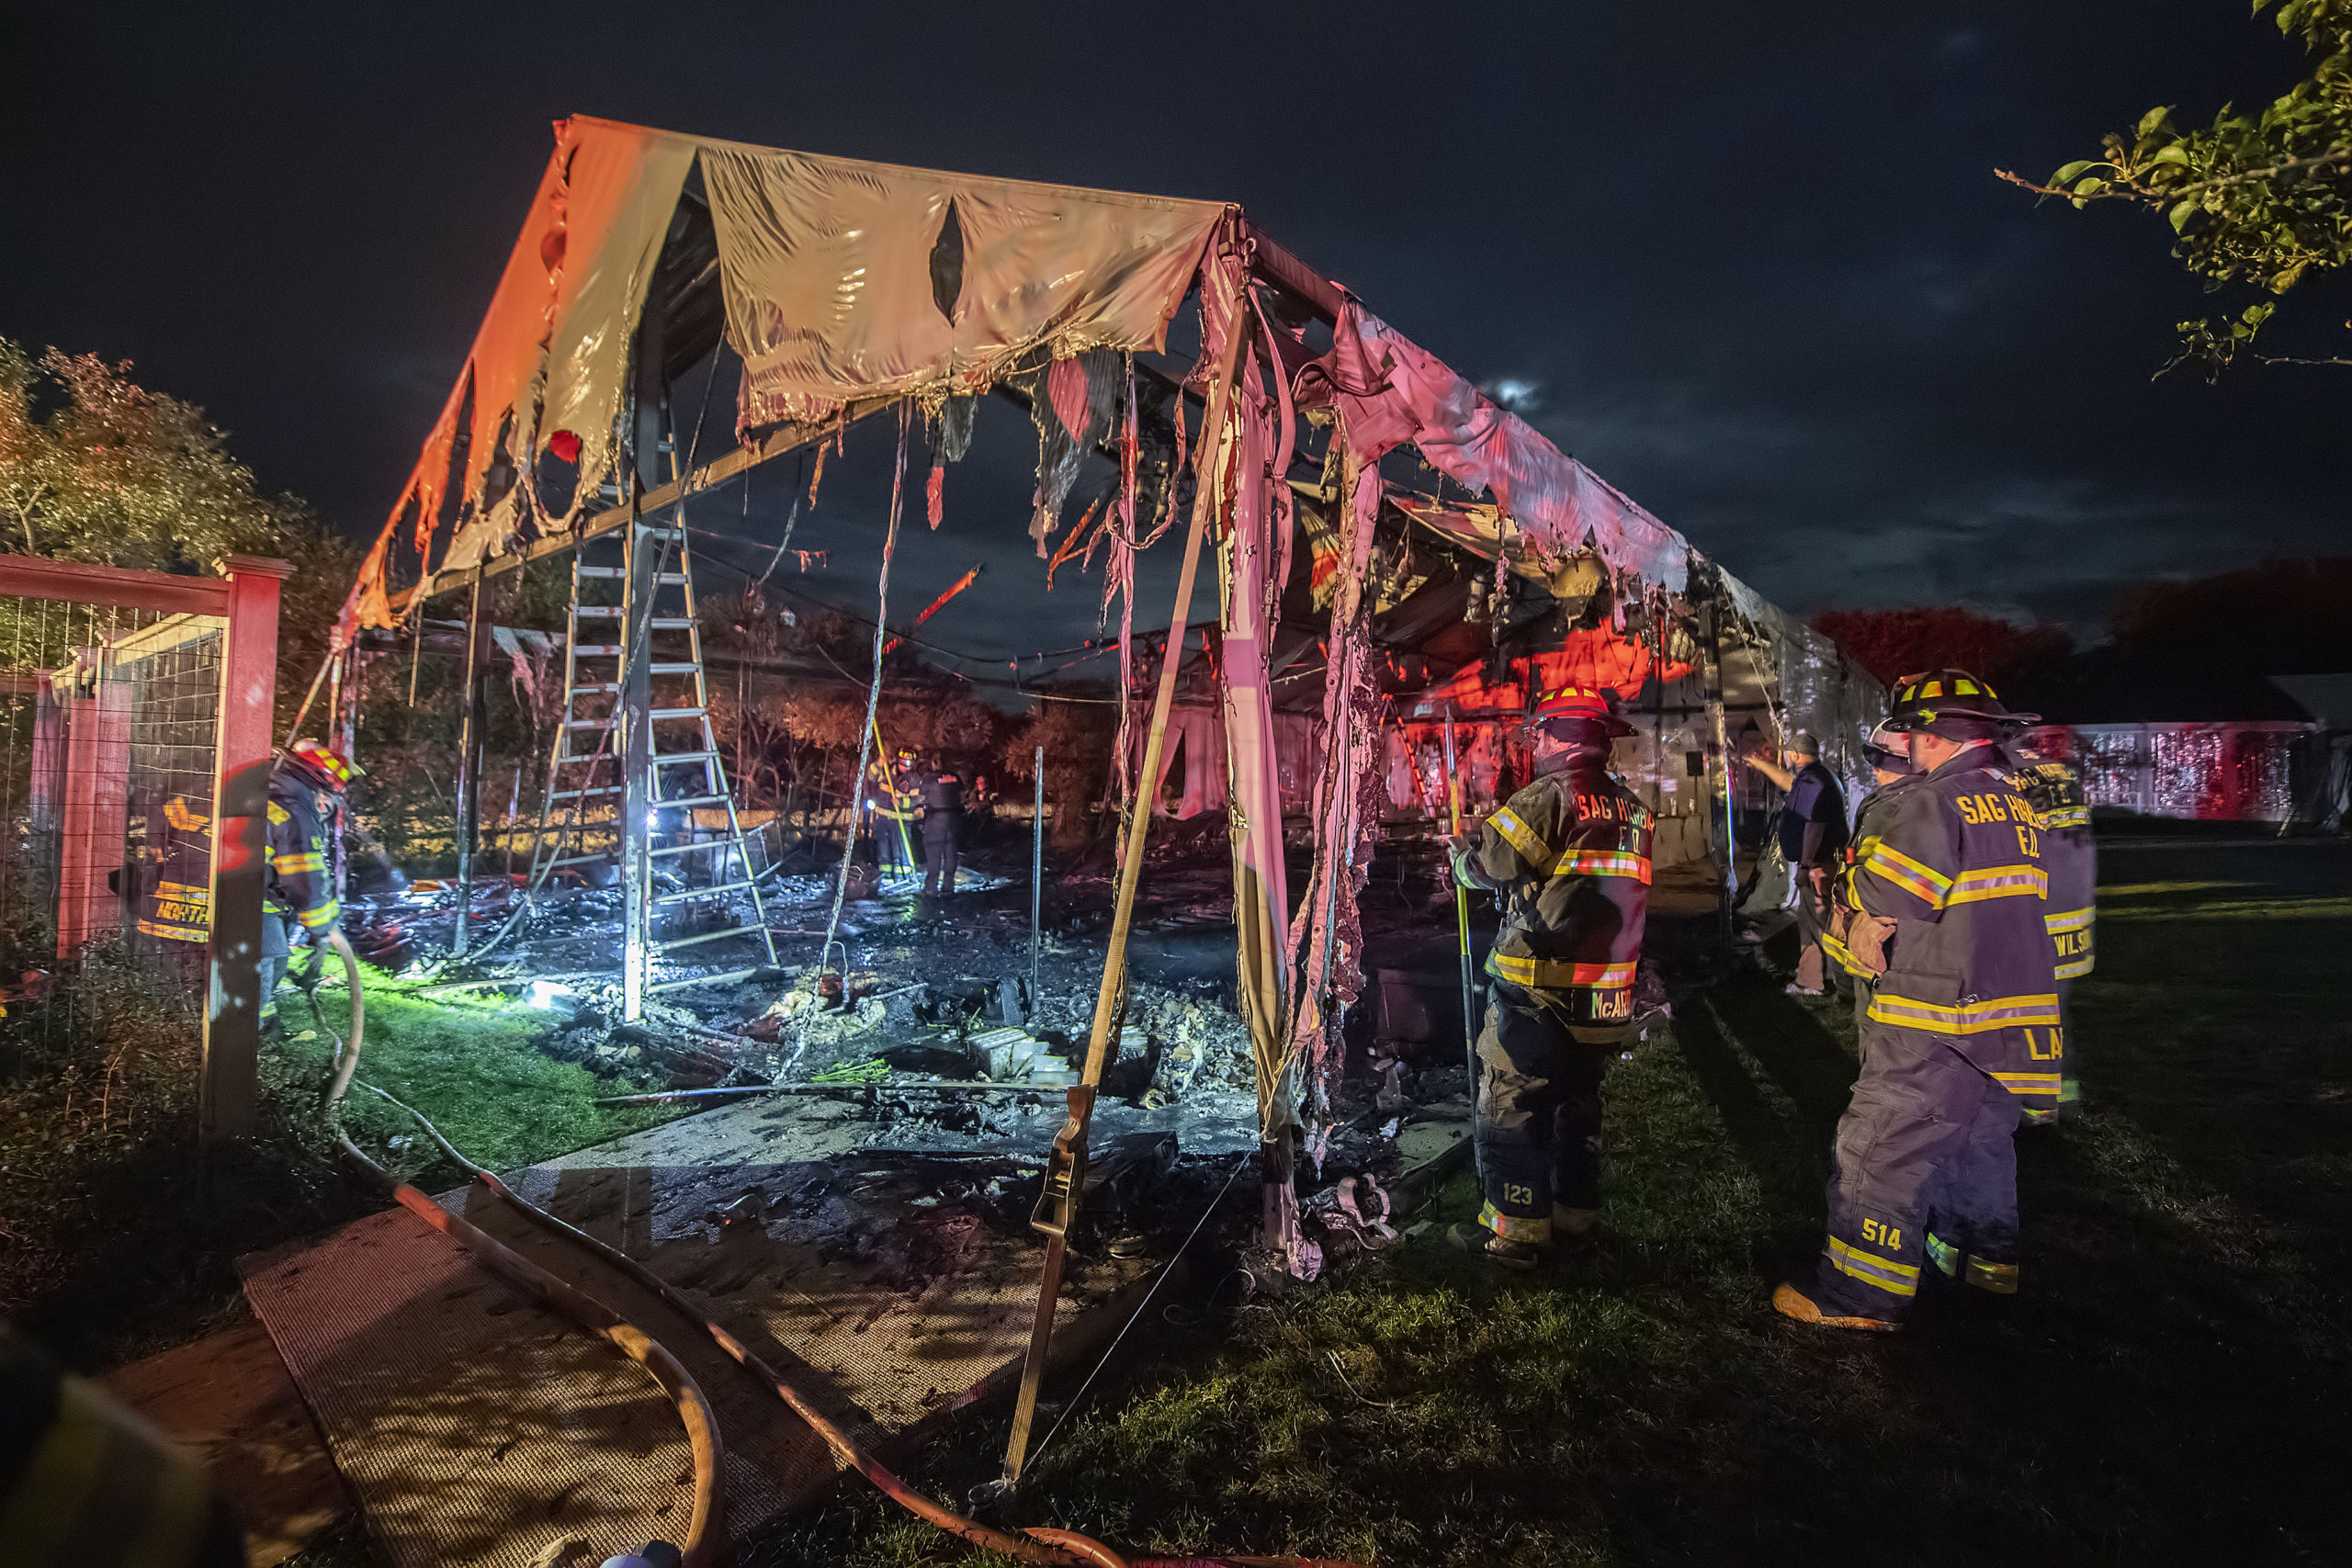 Fire swept through a large party tent Friday behind a home on Lockwood Avenue in Bridgehampton. The Bridgehampton Fire Department, with help from Sag Harbor and East Hampton firefighters, extinguished the blaze, and the party, scheduled for Saturday, went on in a second tent that had already been erected for the event. MICHAEL HELLER